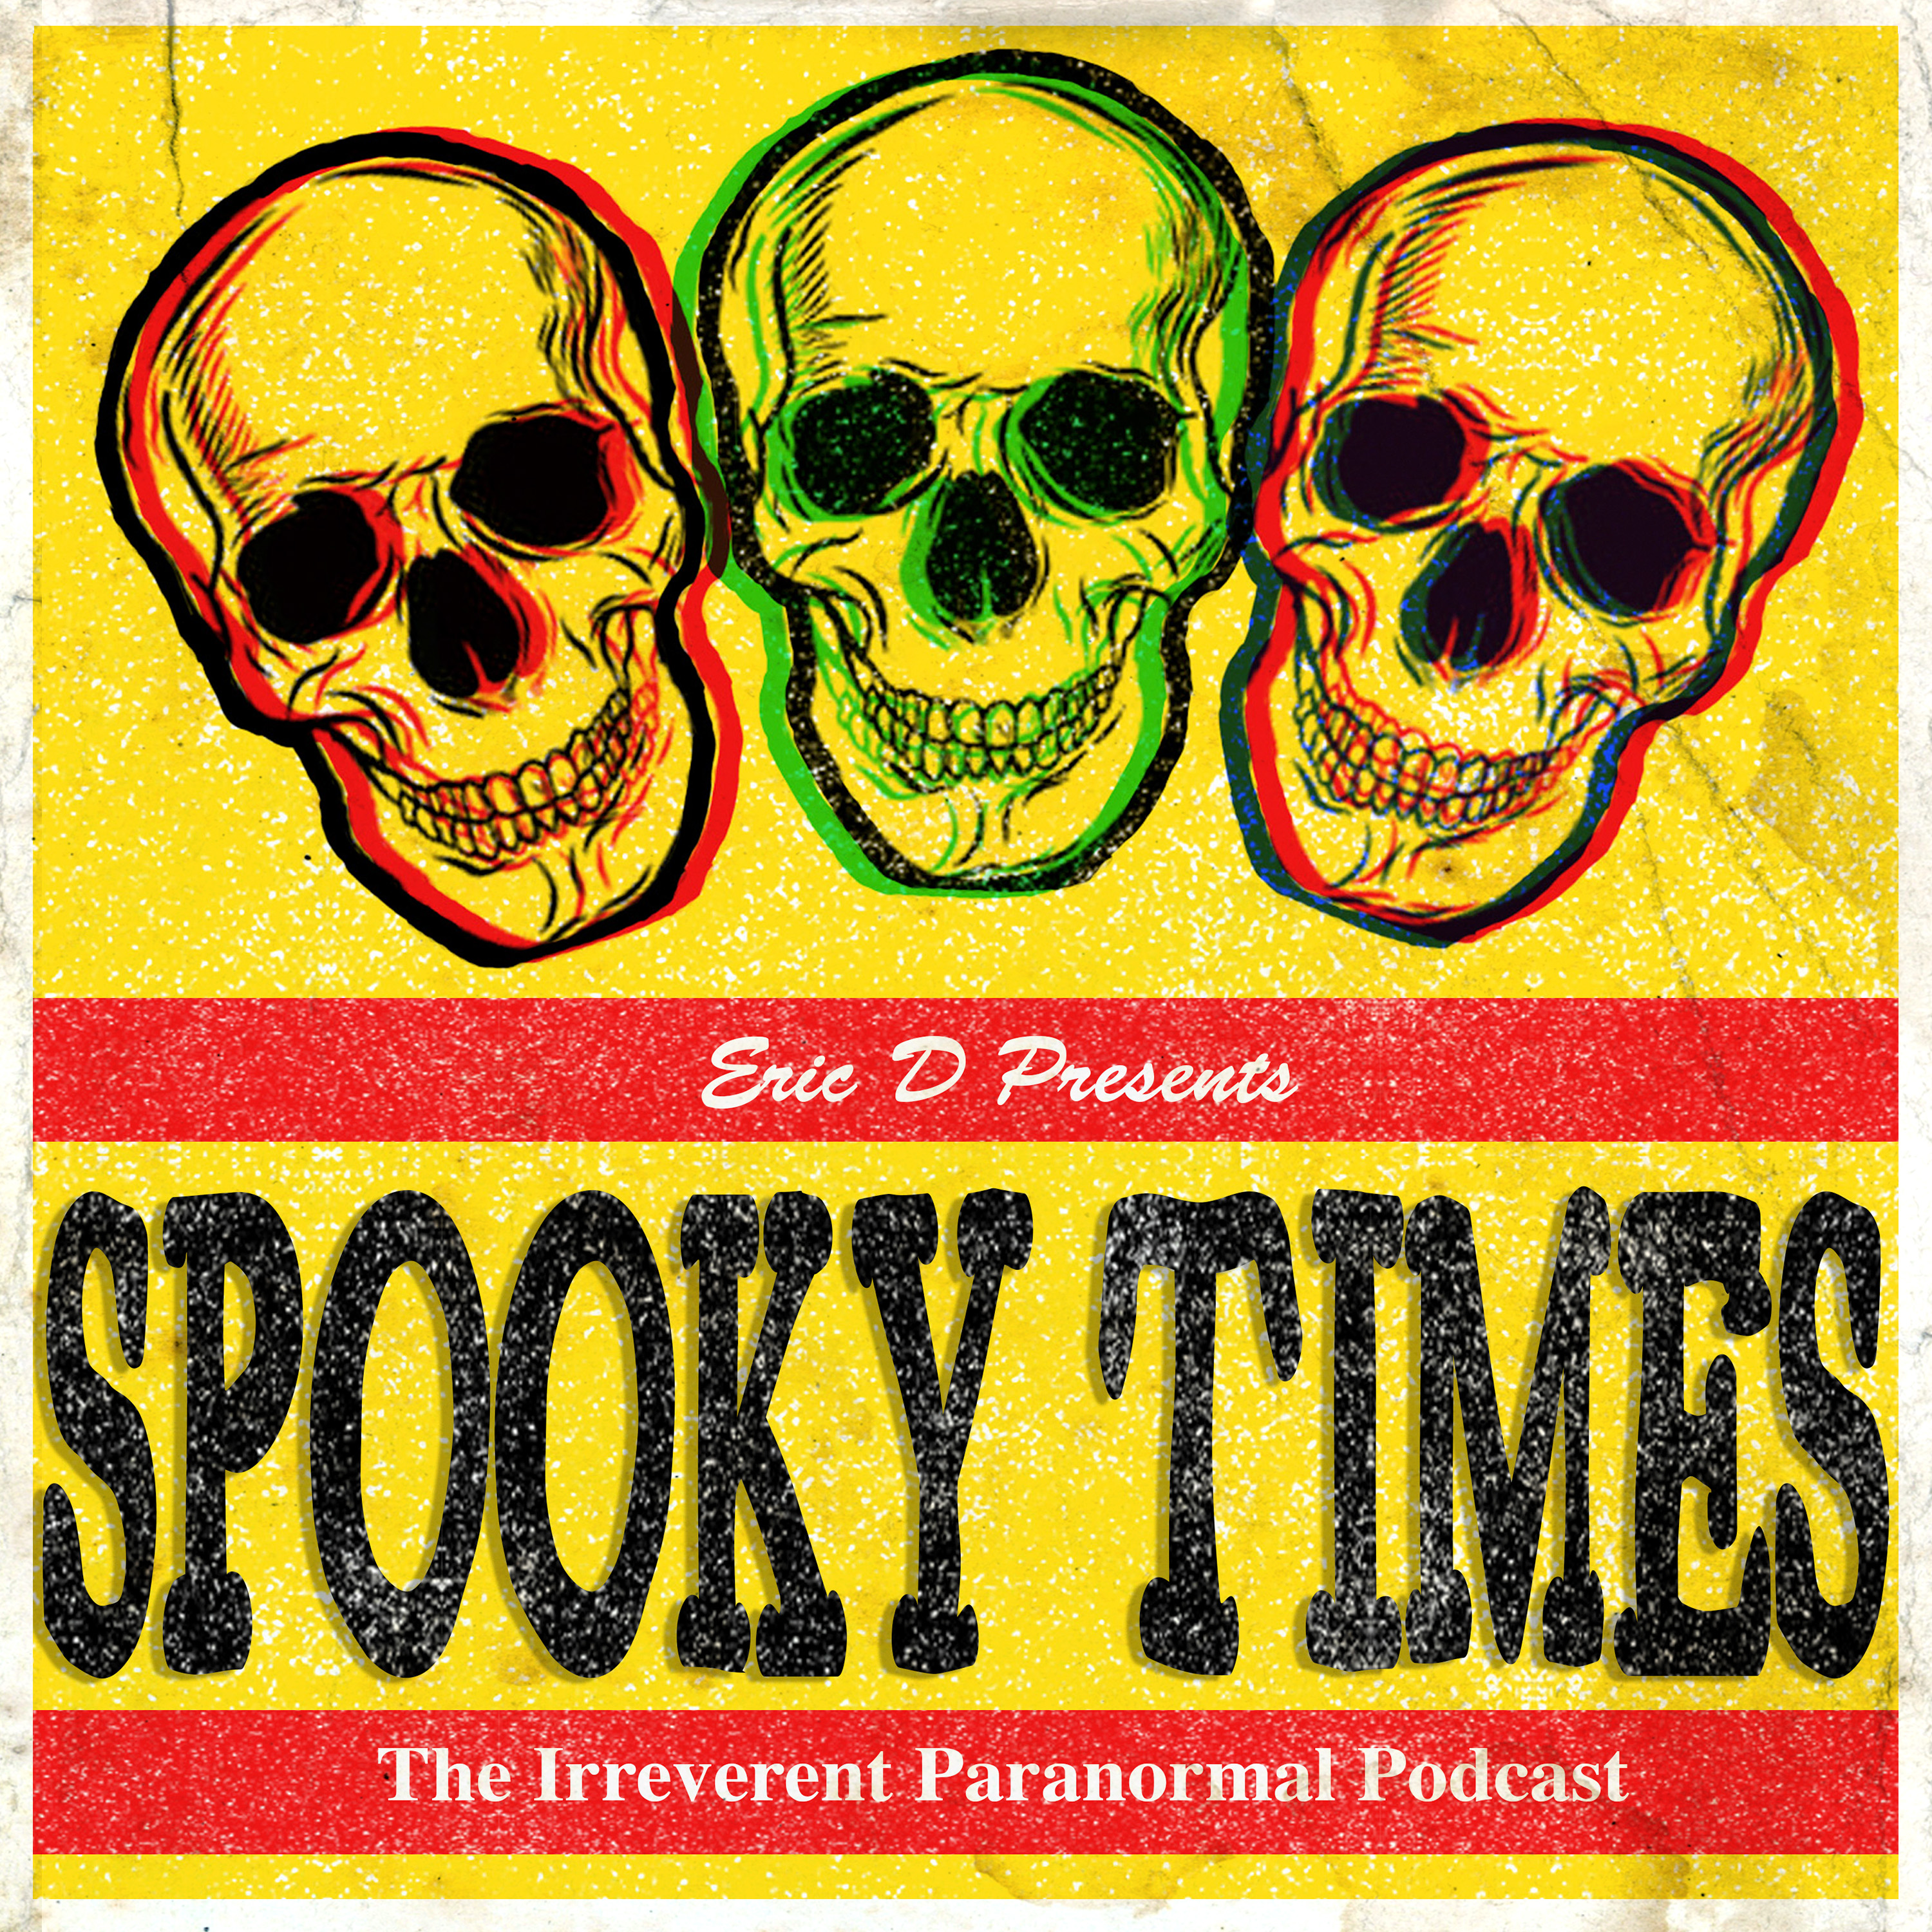 Spooky Times with Eric D show art